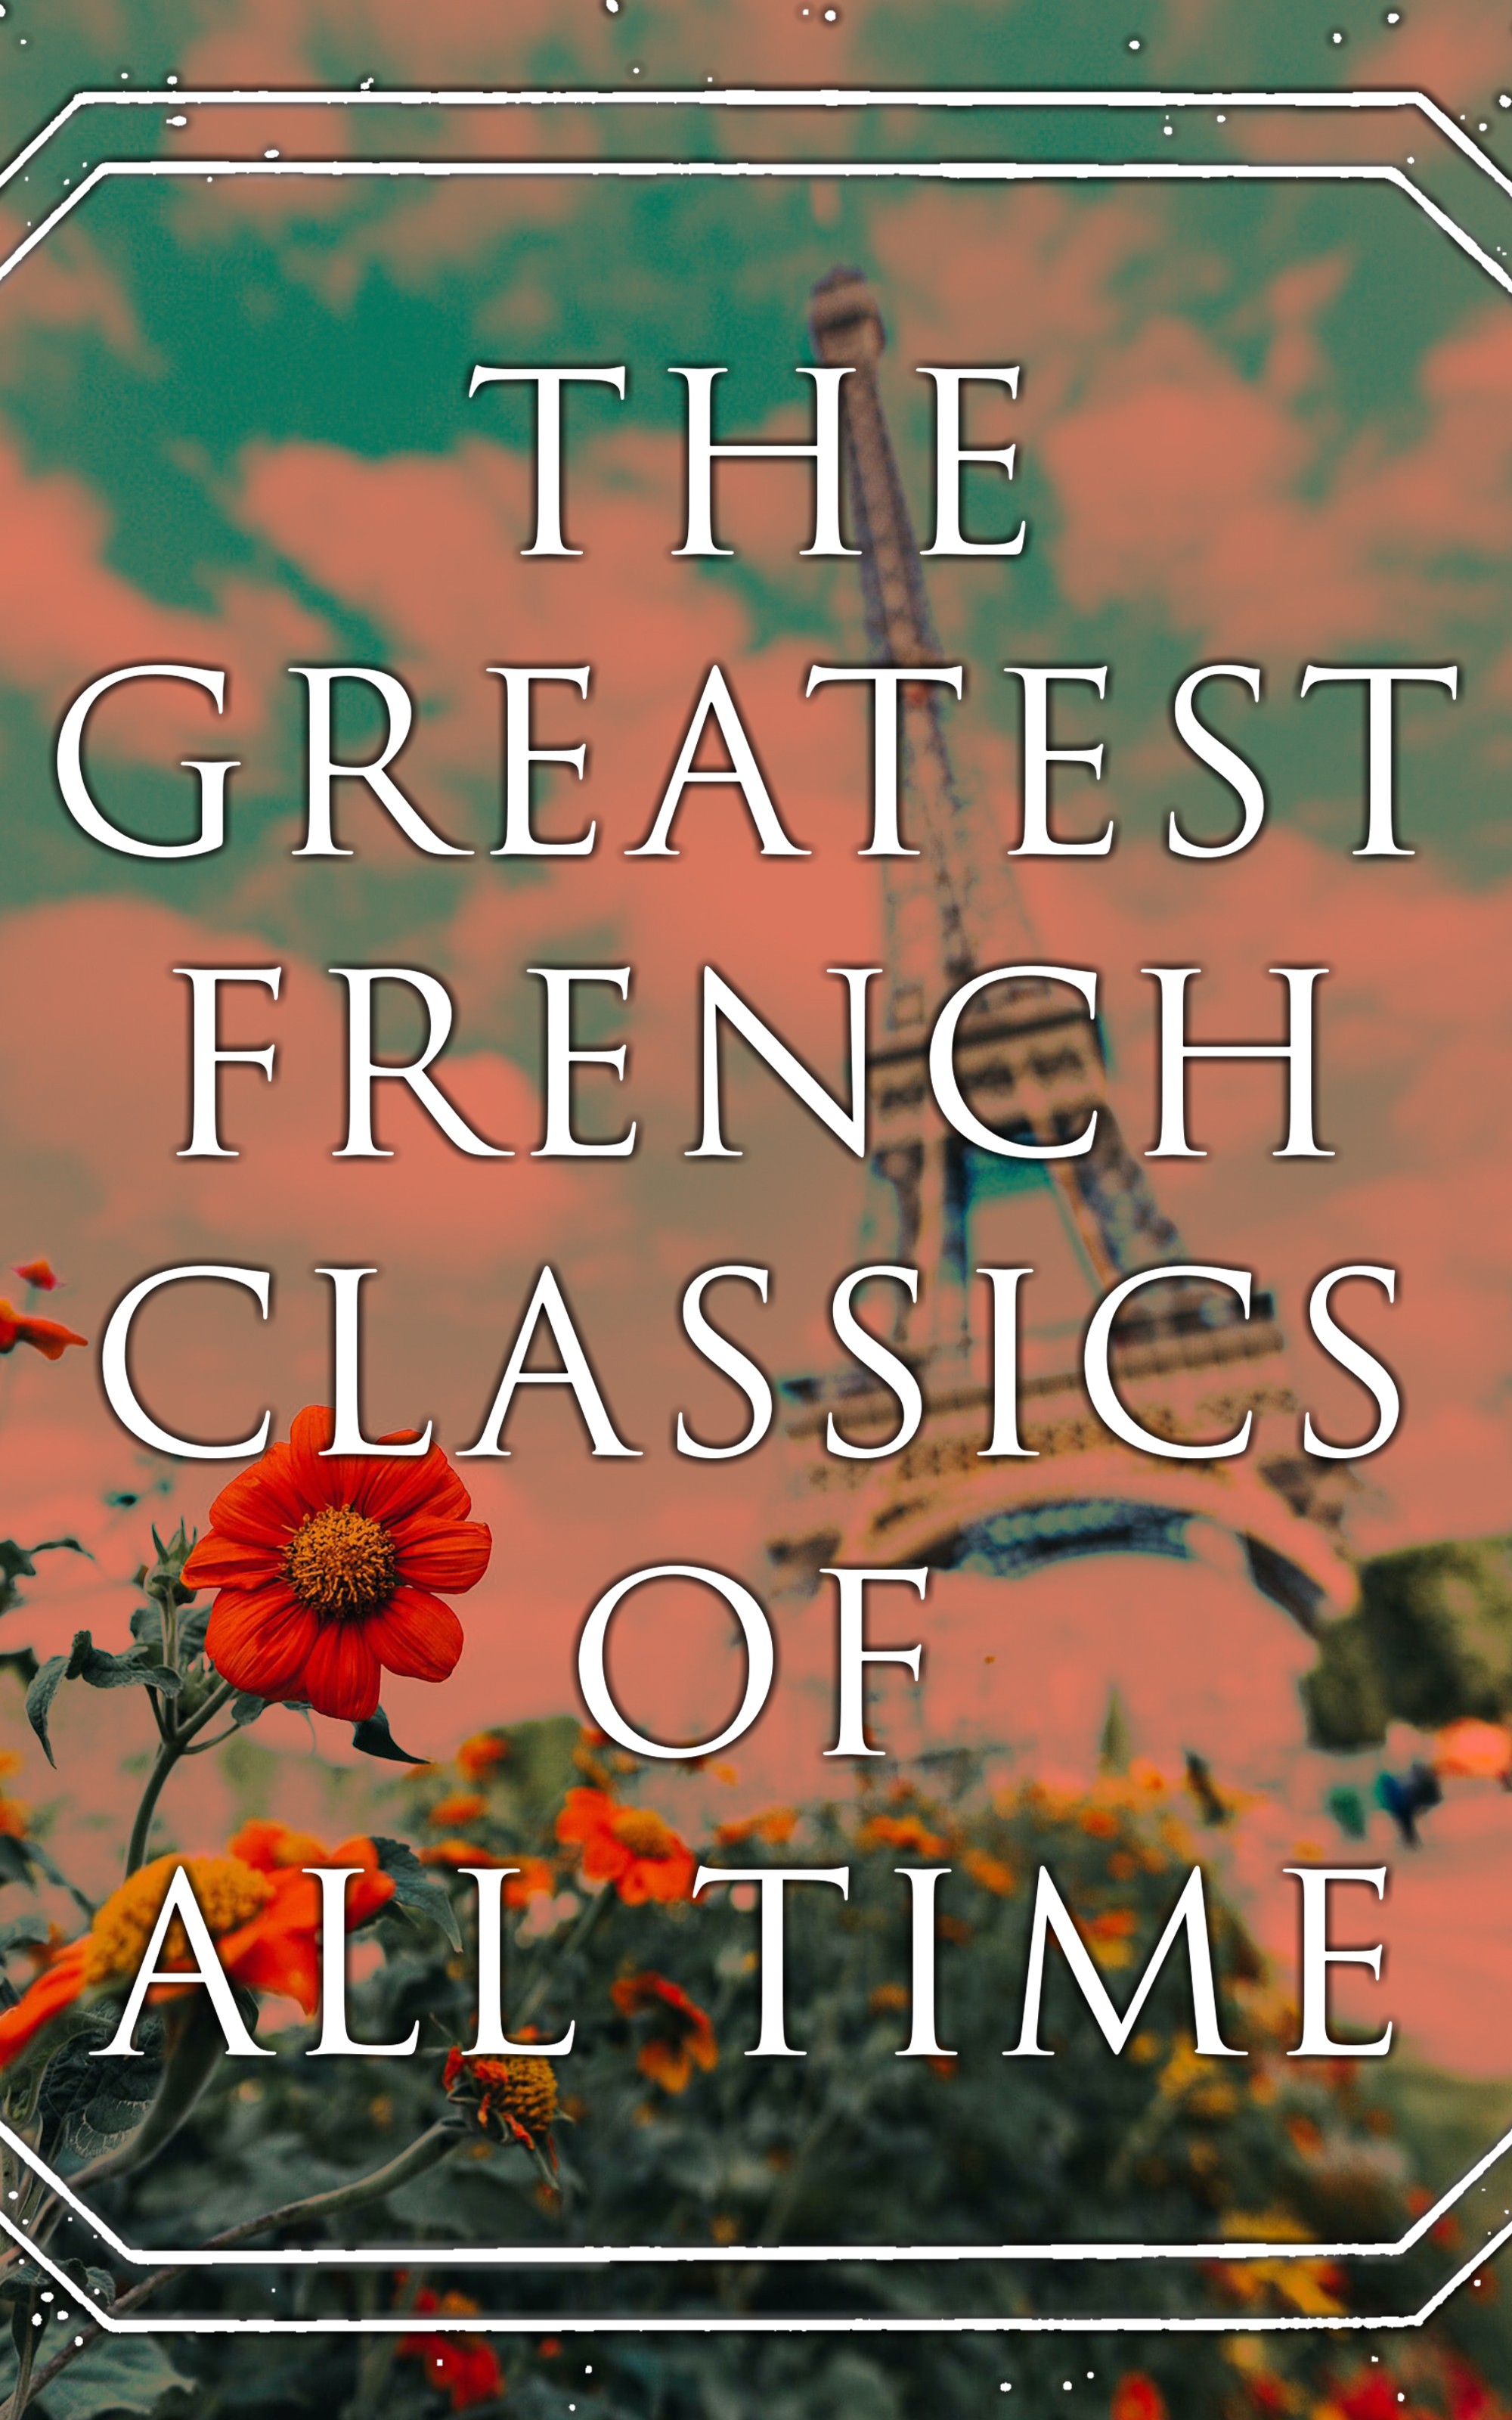 The Greatest French Classics Of All Time